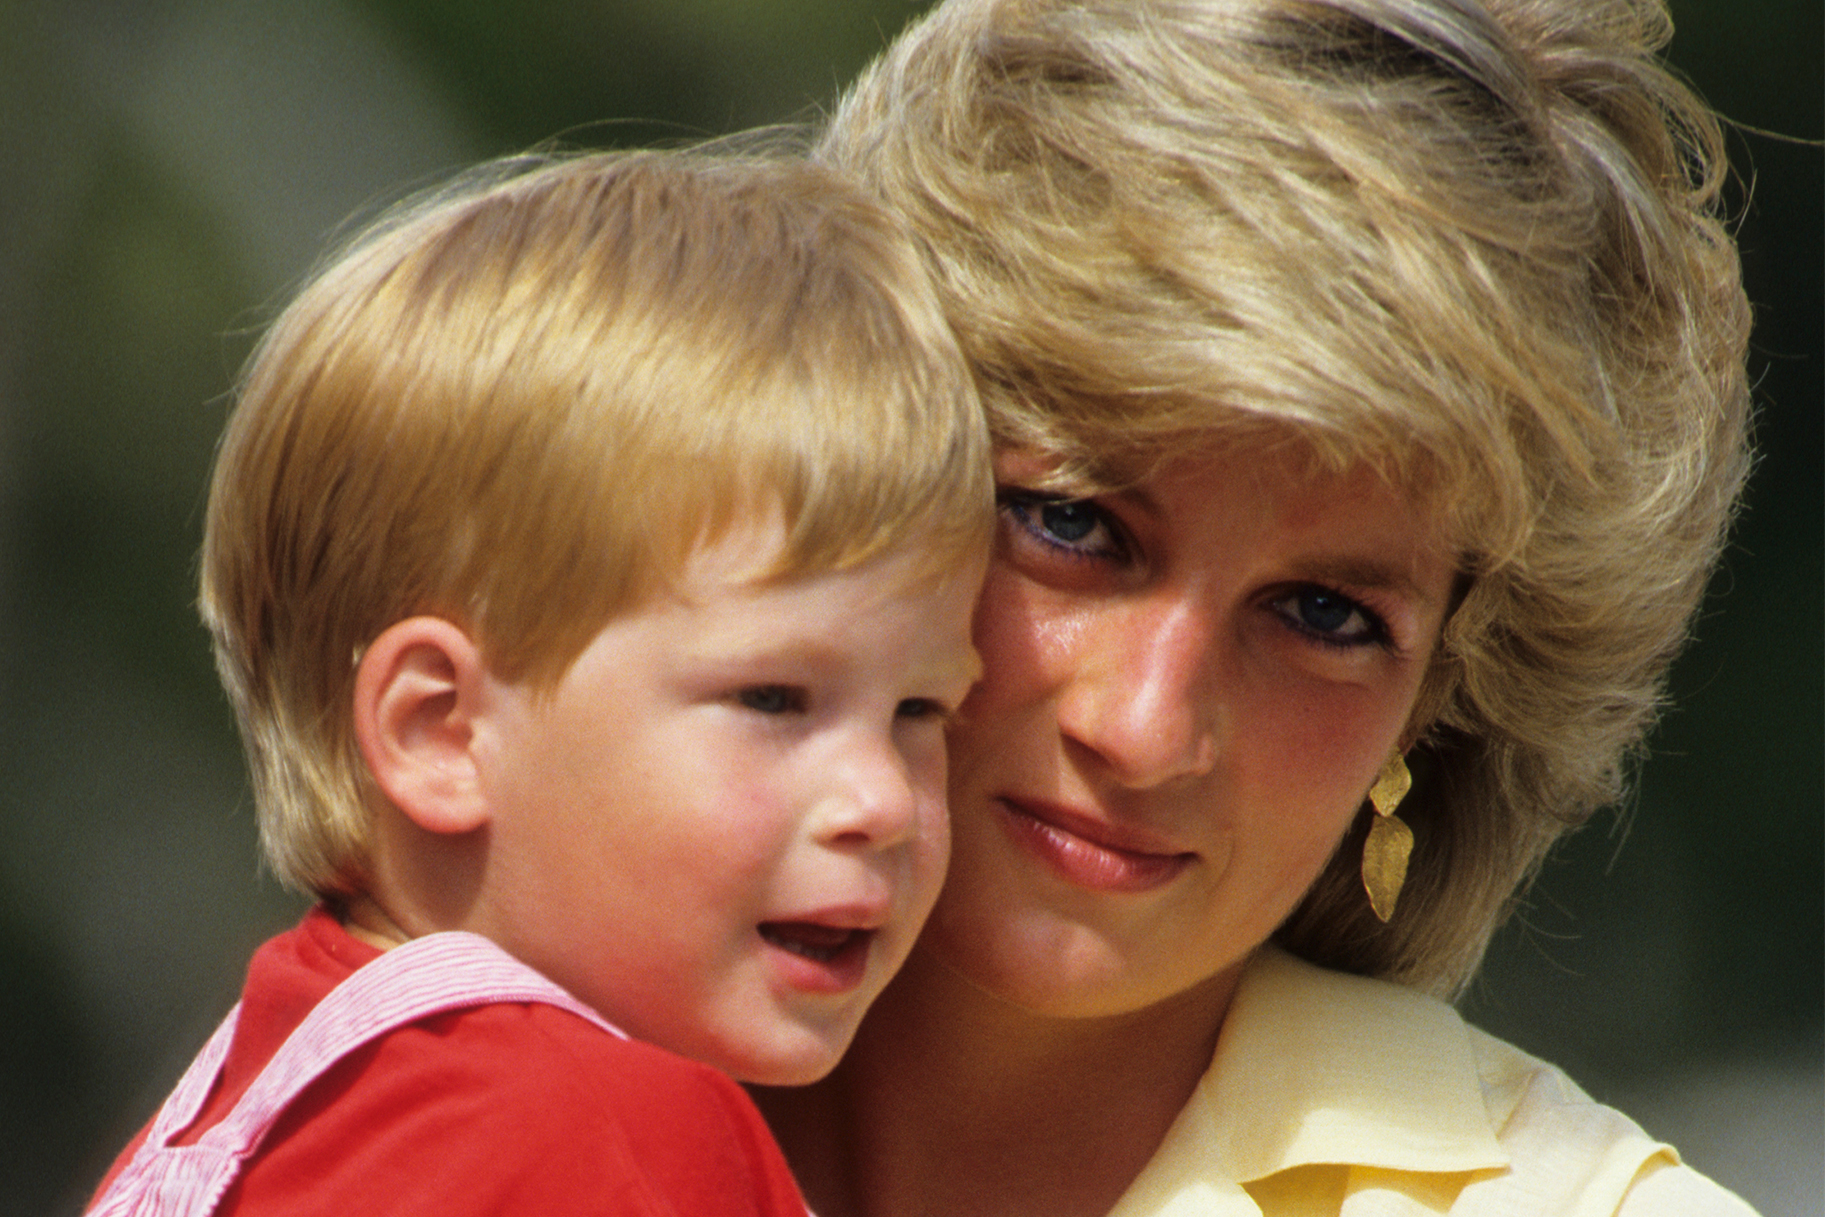 Prince Harry on losing mom Princess Diana